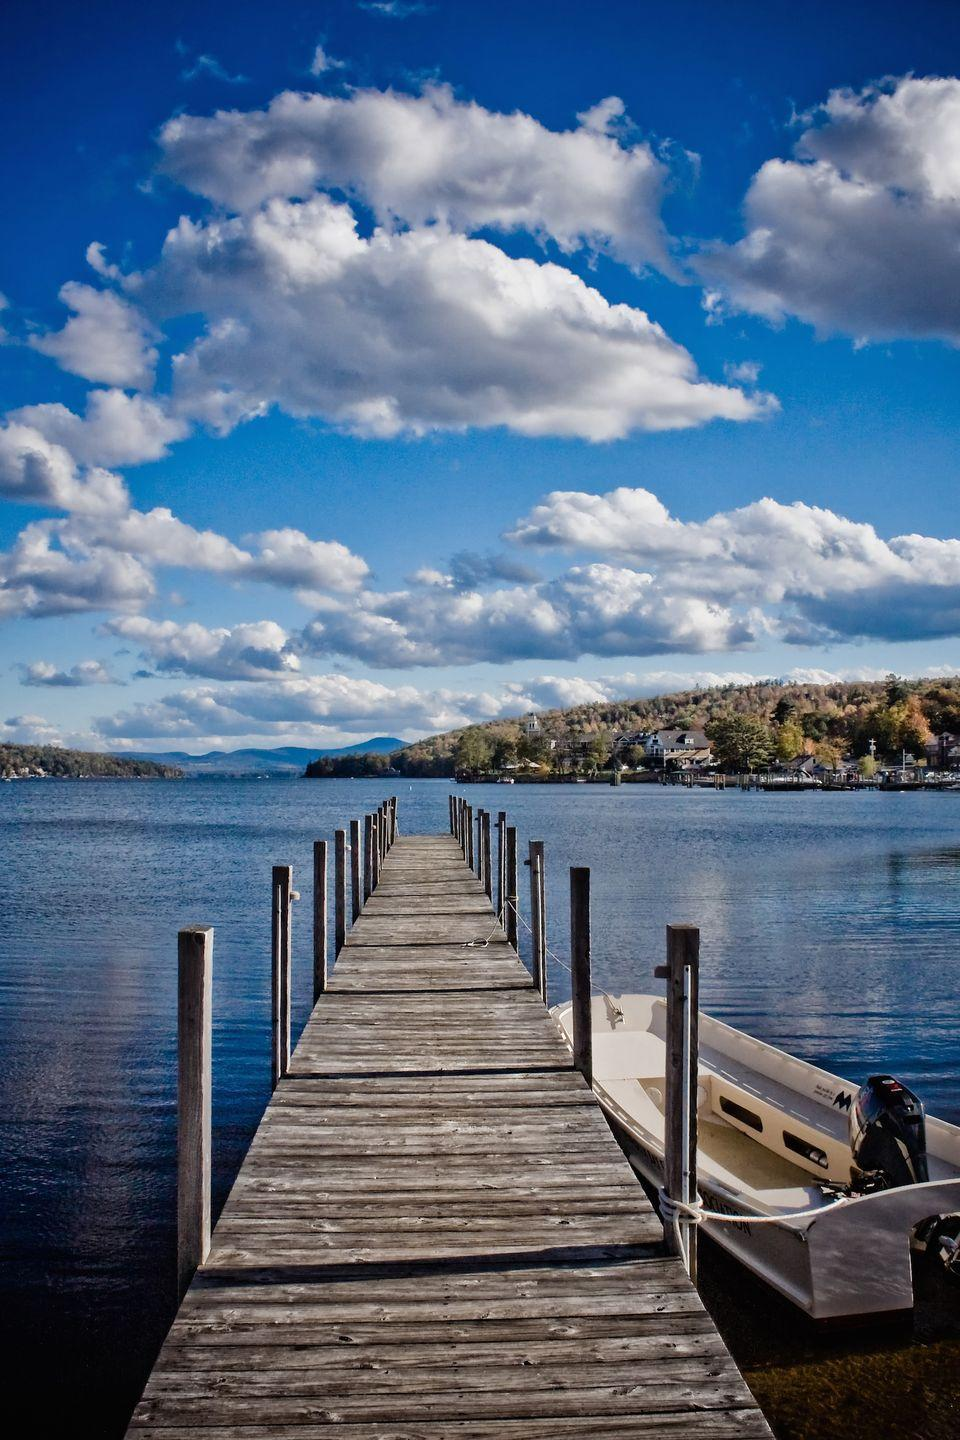 """<p>Life revolves around the mirror-like Lake Winnipesaukee in this laid-back town. Resorts dot the shores, giving residents a good excuse to play tourist for the day. However, the most fun way to explore might be the <a href=""""http://www.hoborr.com/winni.html"""" rel=""""nofollow noopener"""" target=""""_blank"""" data-ylk=""""slk:Winnipesaukee Scenic Railroad"""" class=""""link rapid-noclick-resp"""">Winnipesaukee Scenic Railroad</a>.</p><p><a href=""""https://www.housebeautiful.com/design-inspiration/celebrity-homes/a5286/bette-davis-butternut-farm/"""" rel=""""nofollow noopener"""" target=""""_blank"""" data-ylk=""""slk:Rent Bette Davis' New Hampshire farm »"""" class=""""link rapid-noclick-resp""""><em>Rent Bette Davis' New Hampshire farm »</em></a></p>"""